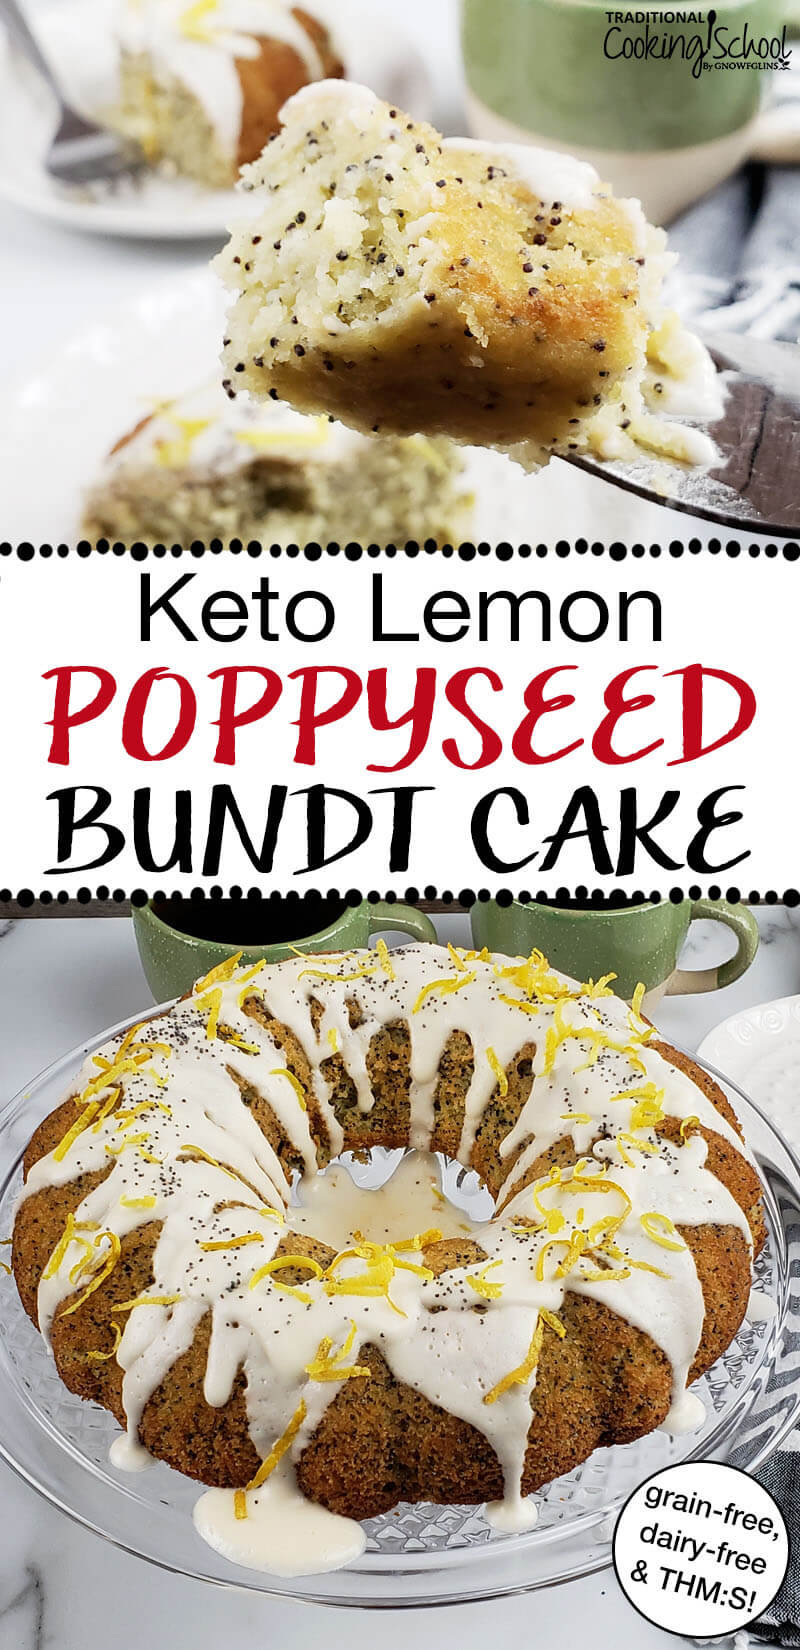 keto lemon poppyseed bundt cake with text overlay 'Keto Lemon Poppyseed Bundt Cake'